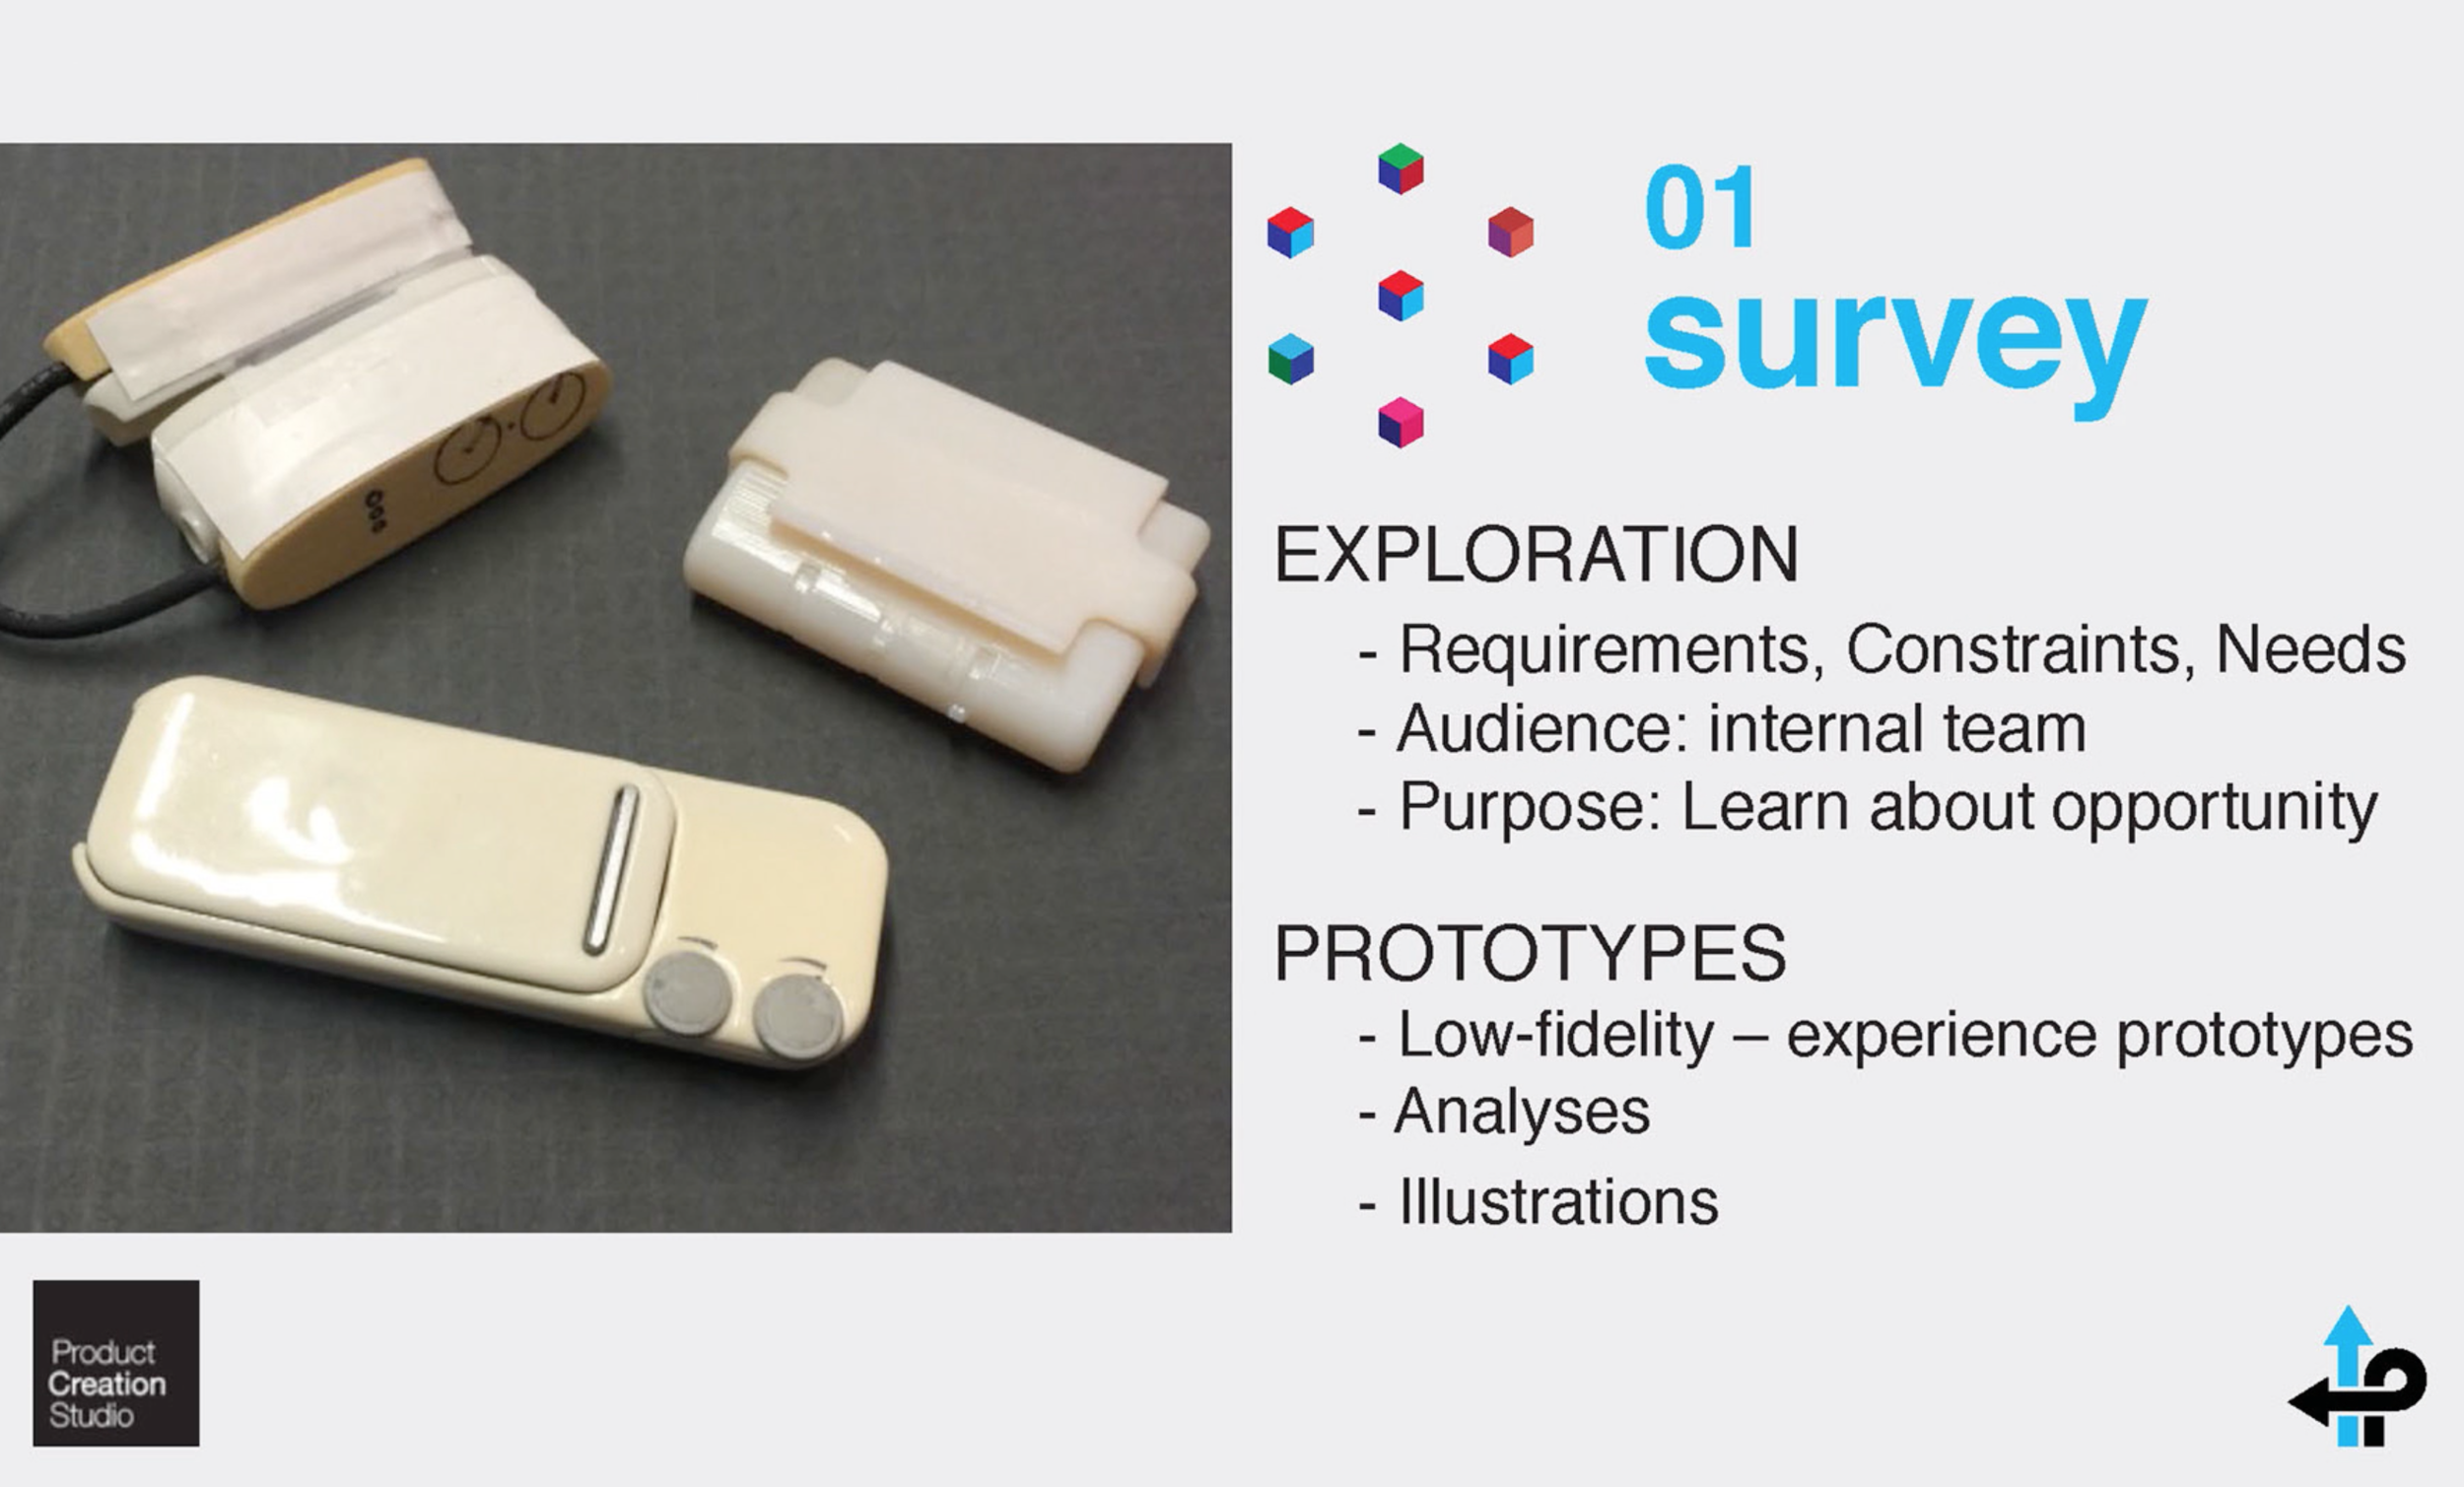 right size prototyping image 3.png